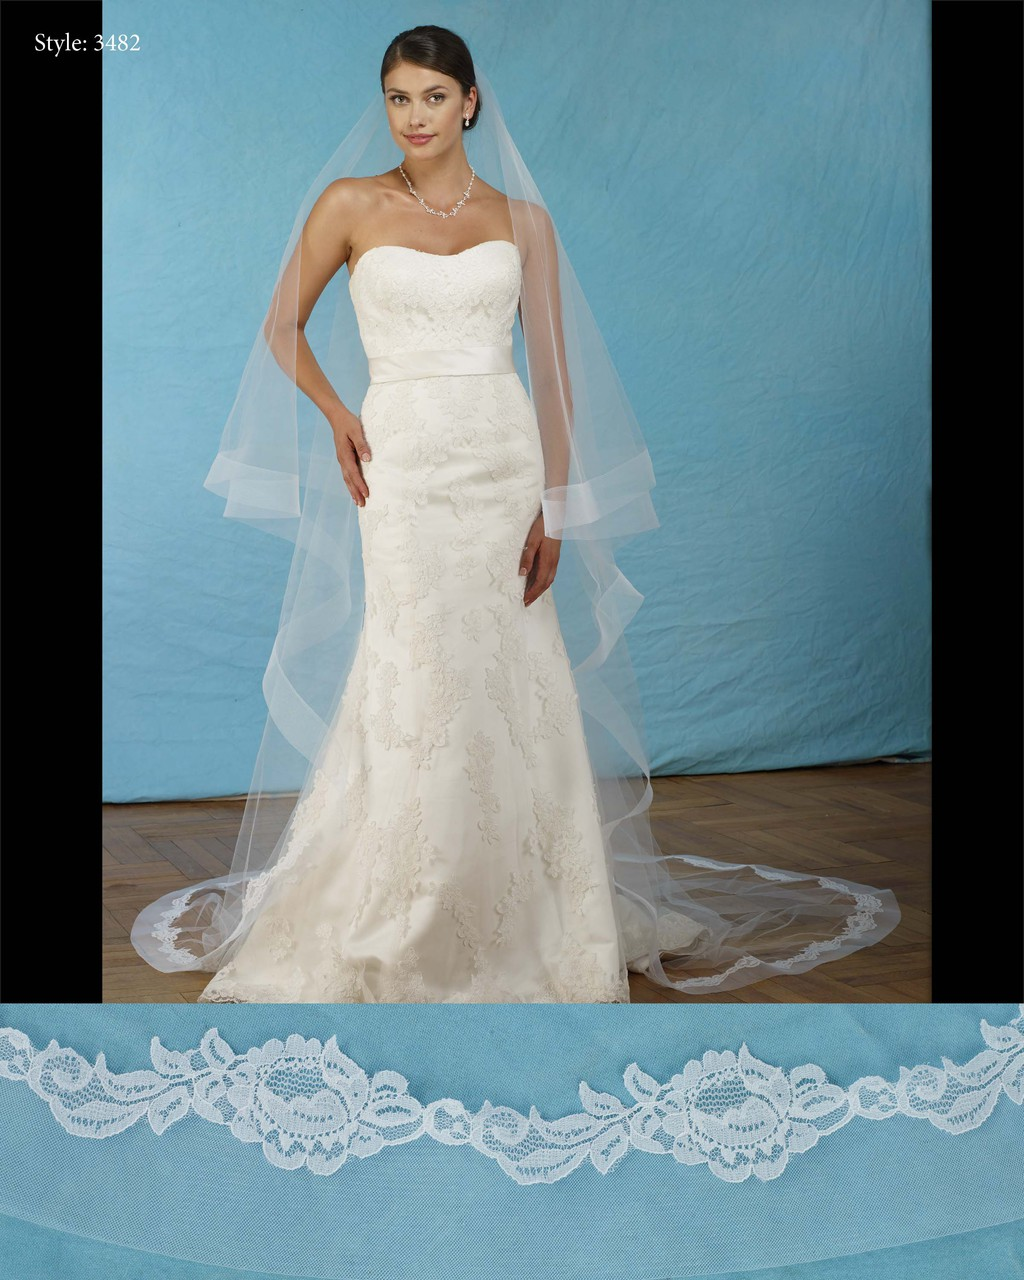 """Marionat Bridal Veils 3482-Foldover horsehair lace veil 108"""" Inches ..."""